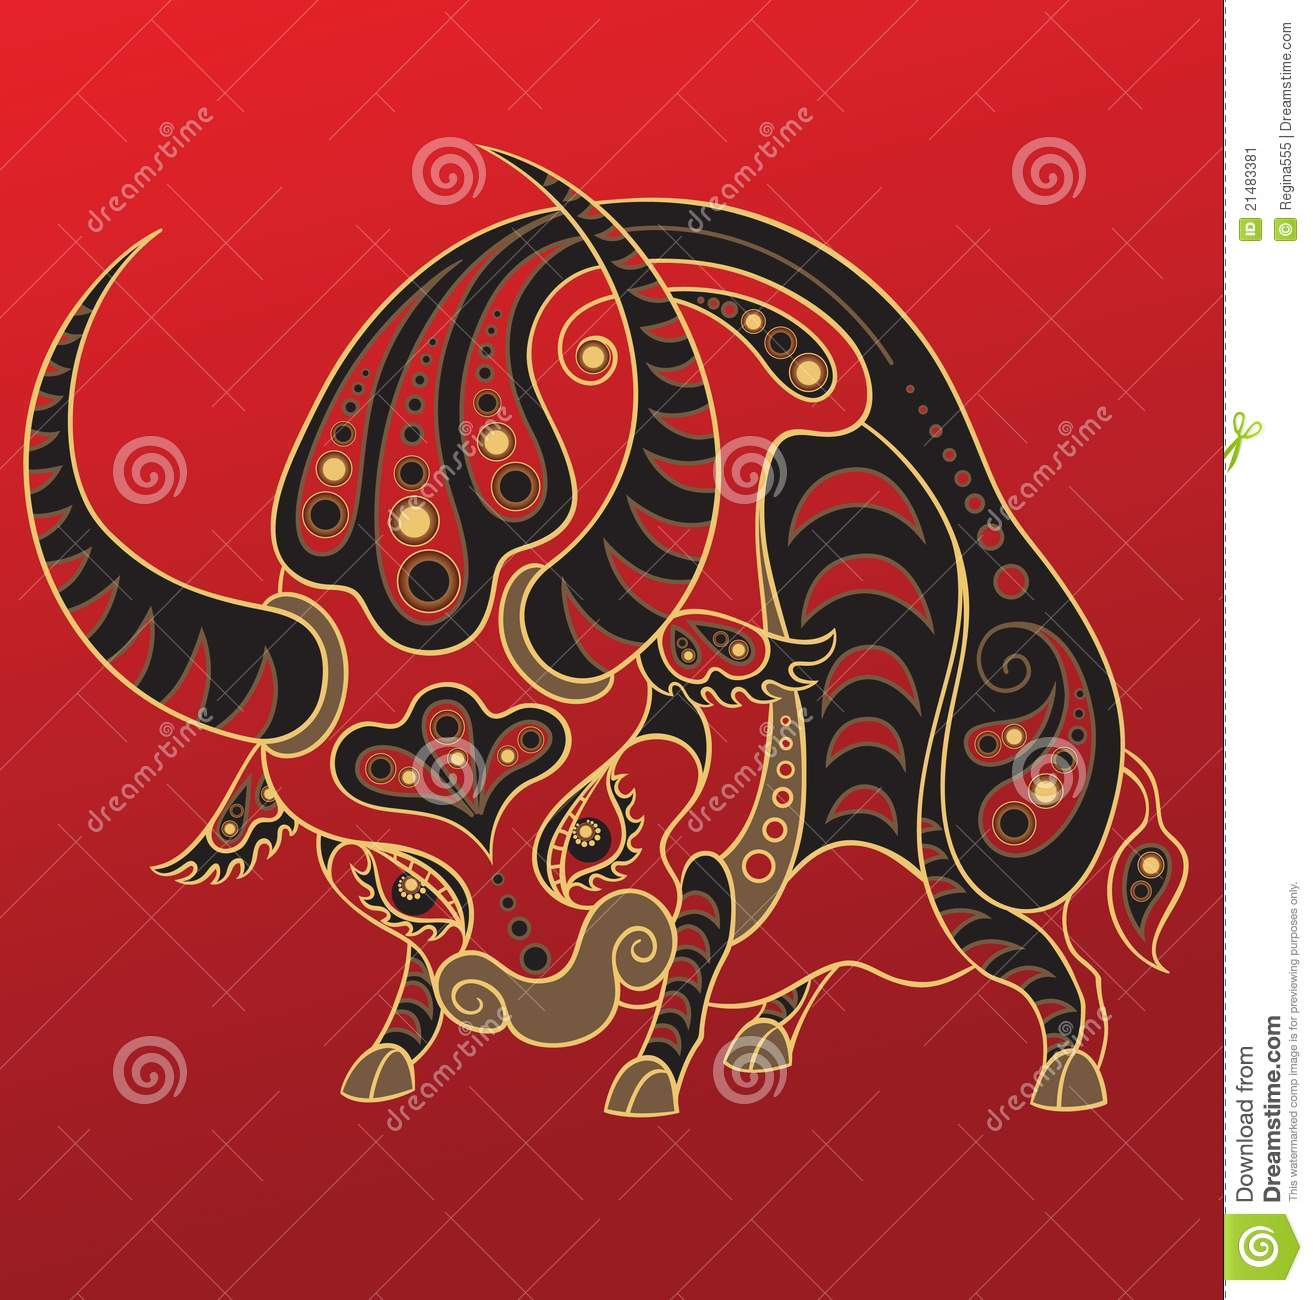 chinese horoscope year of the ox stock image image 21483381. Black Bedroom Furniture Sets. Home Design Ideas